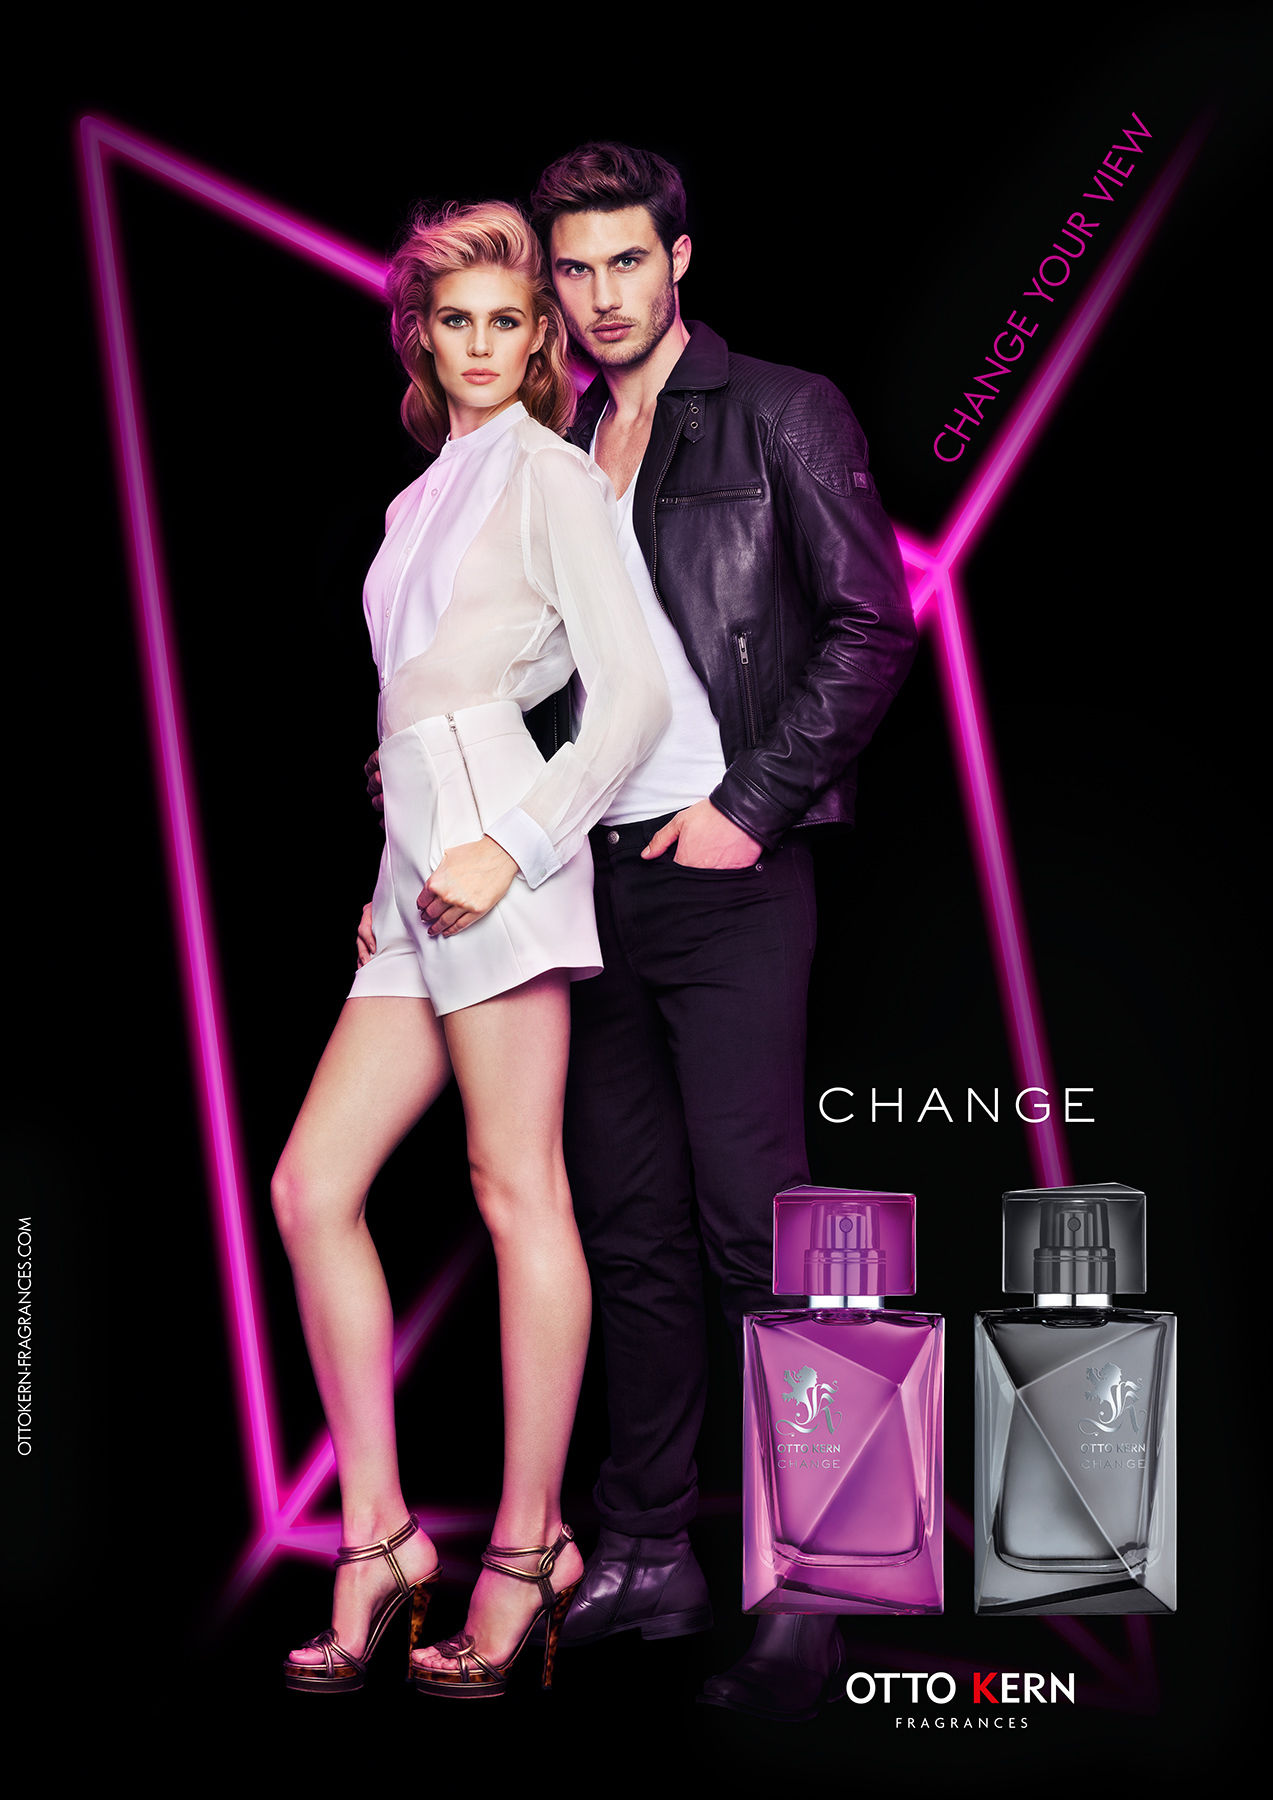 CHANGE - The new fragrance by Otto Kern